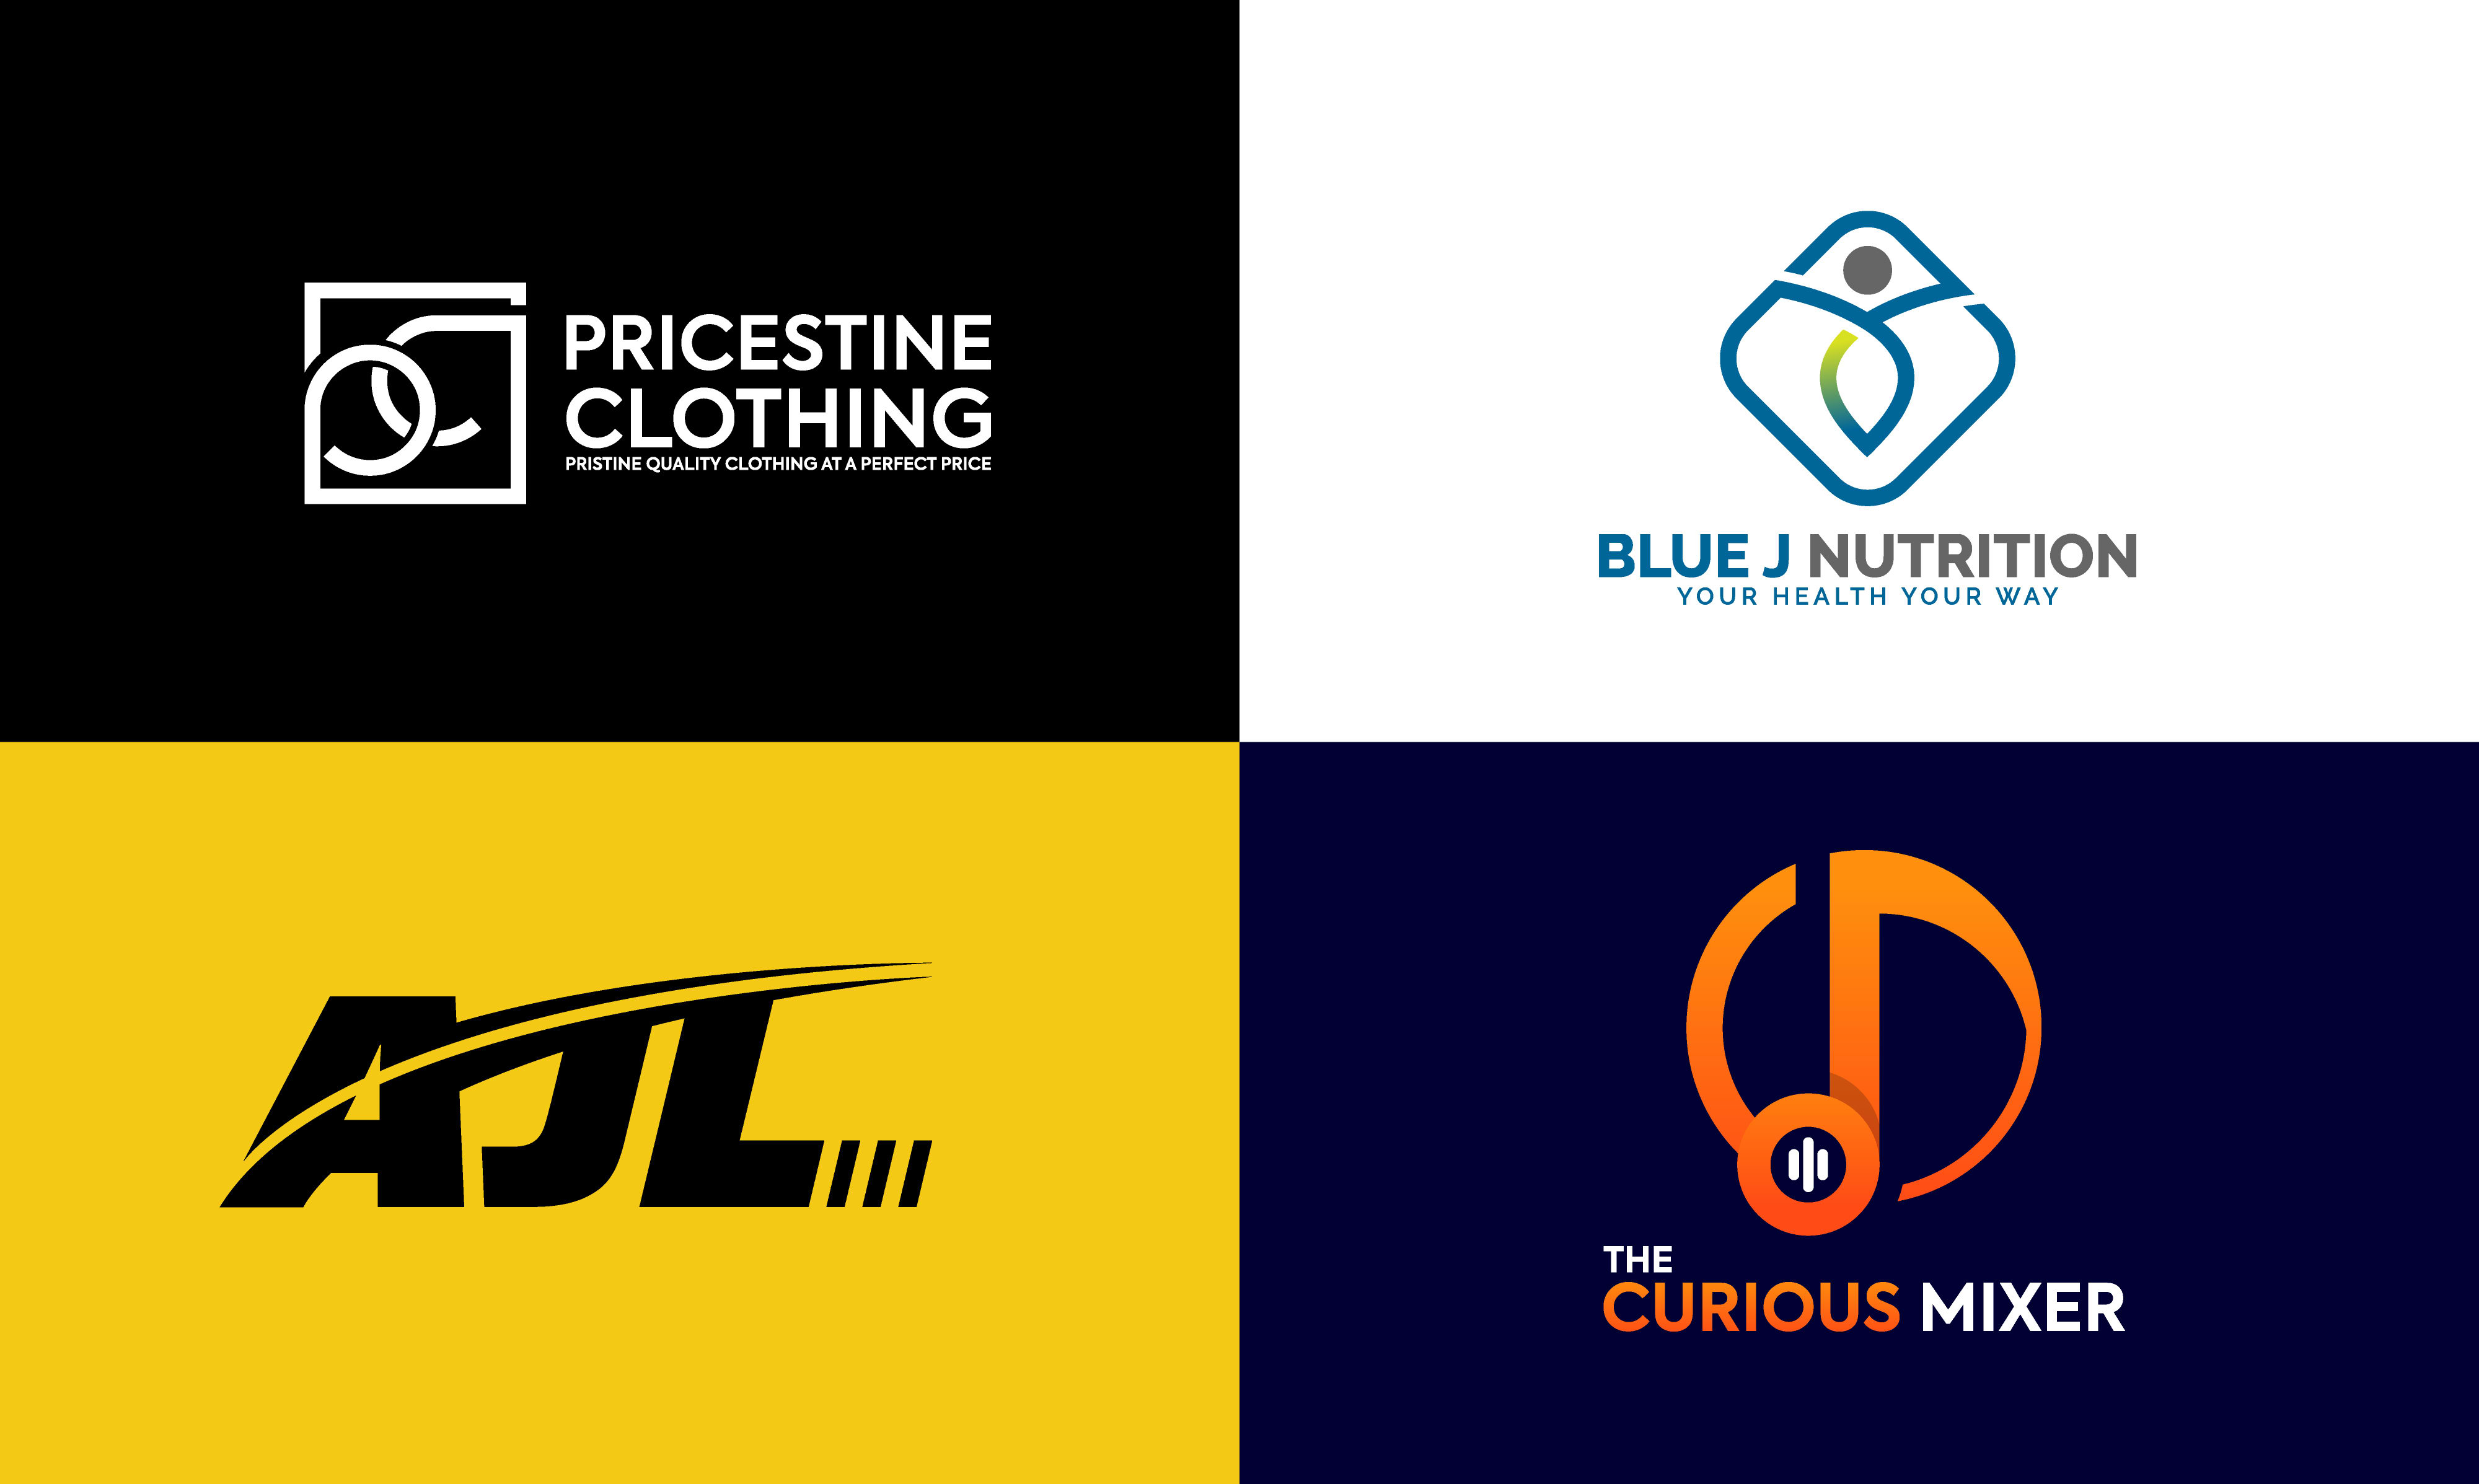 I will design minimalist logo design for your company or brands